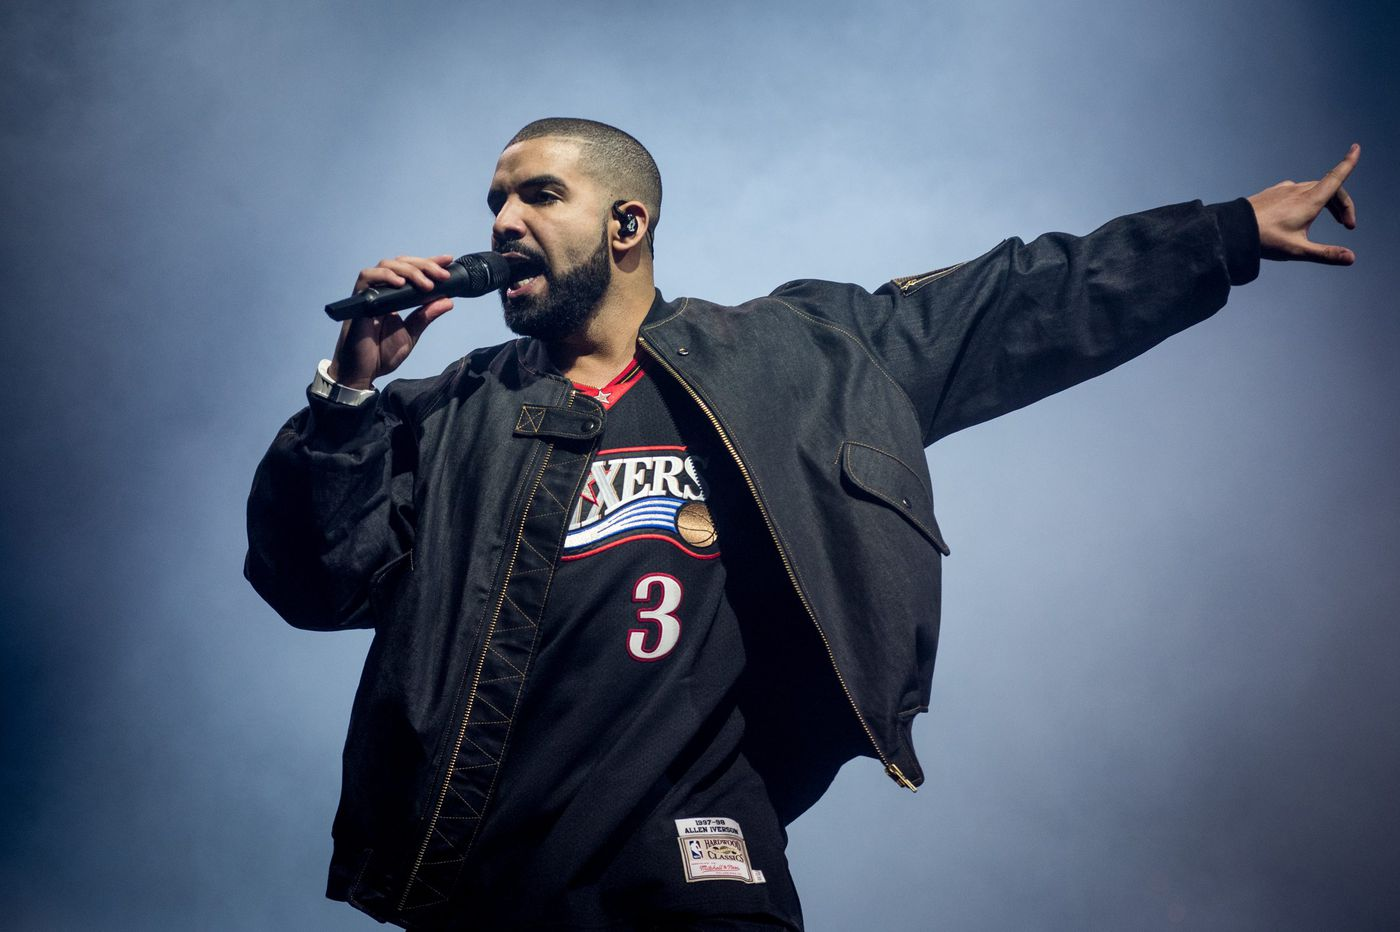 Drake, Childish Gambino, Kurt Vile and more come to Philadelphia for concerts this fall